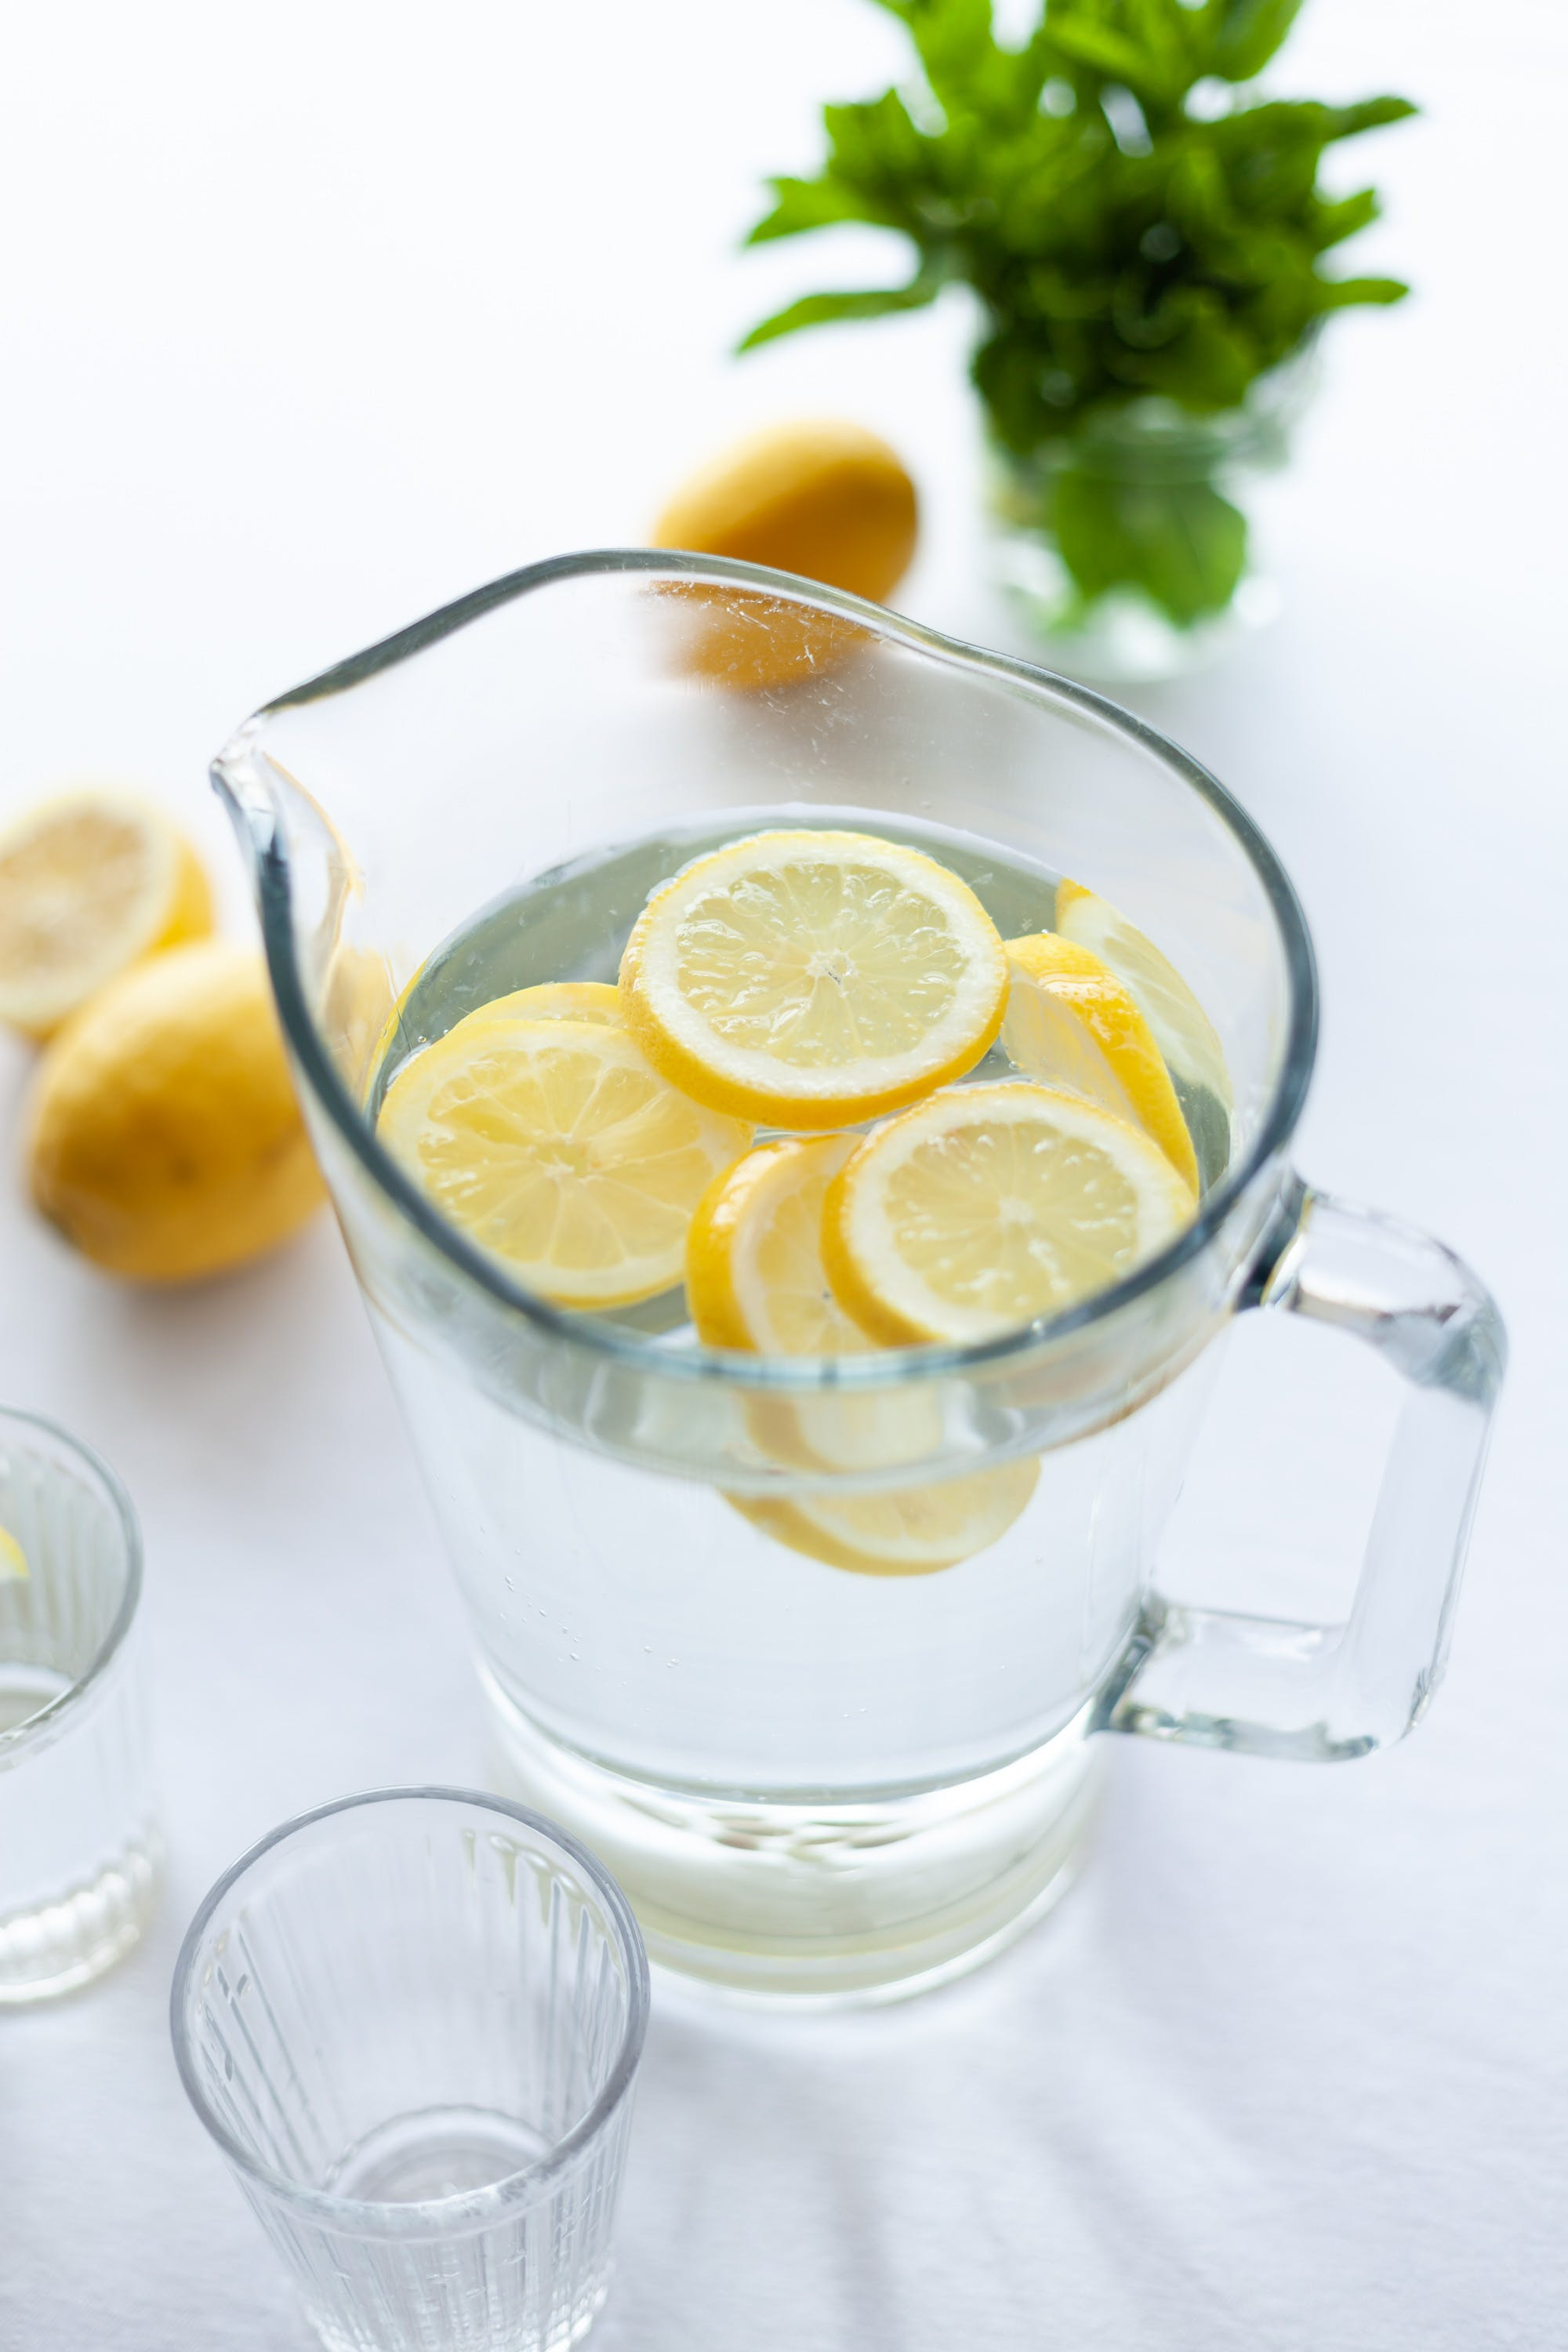 Clear Glass Pitcher Filled With Clear Liquid and Slices of Lemon